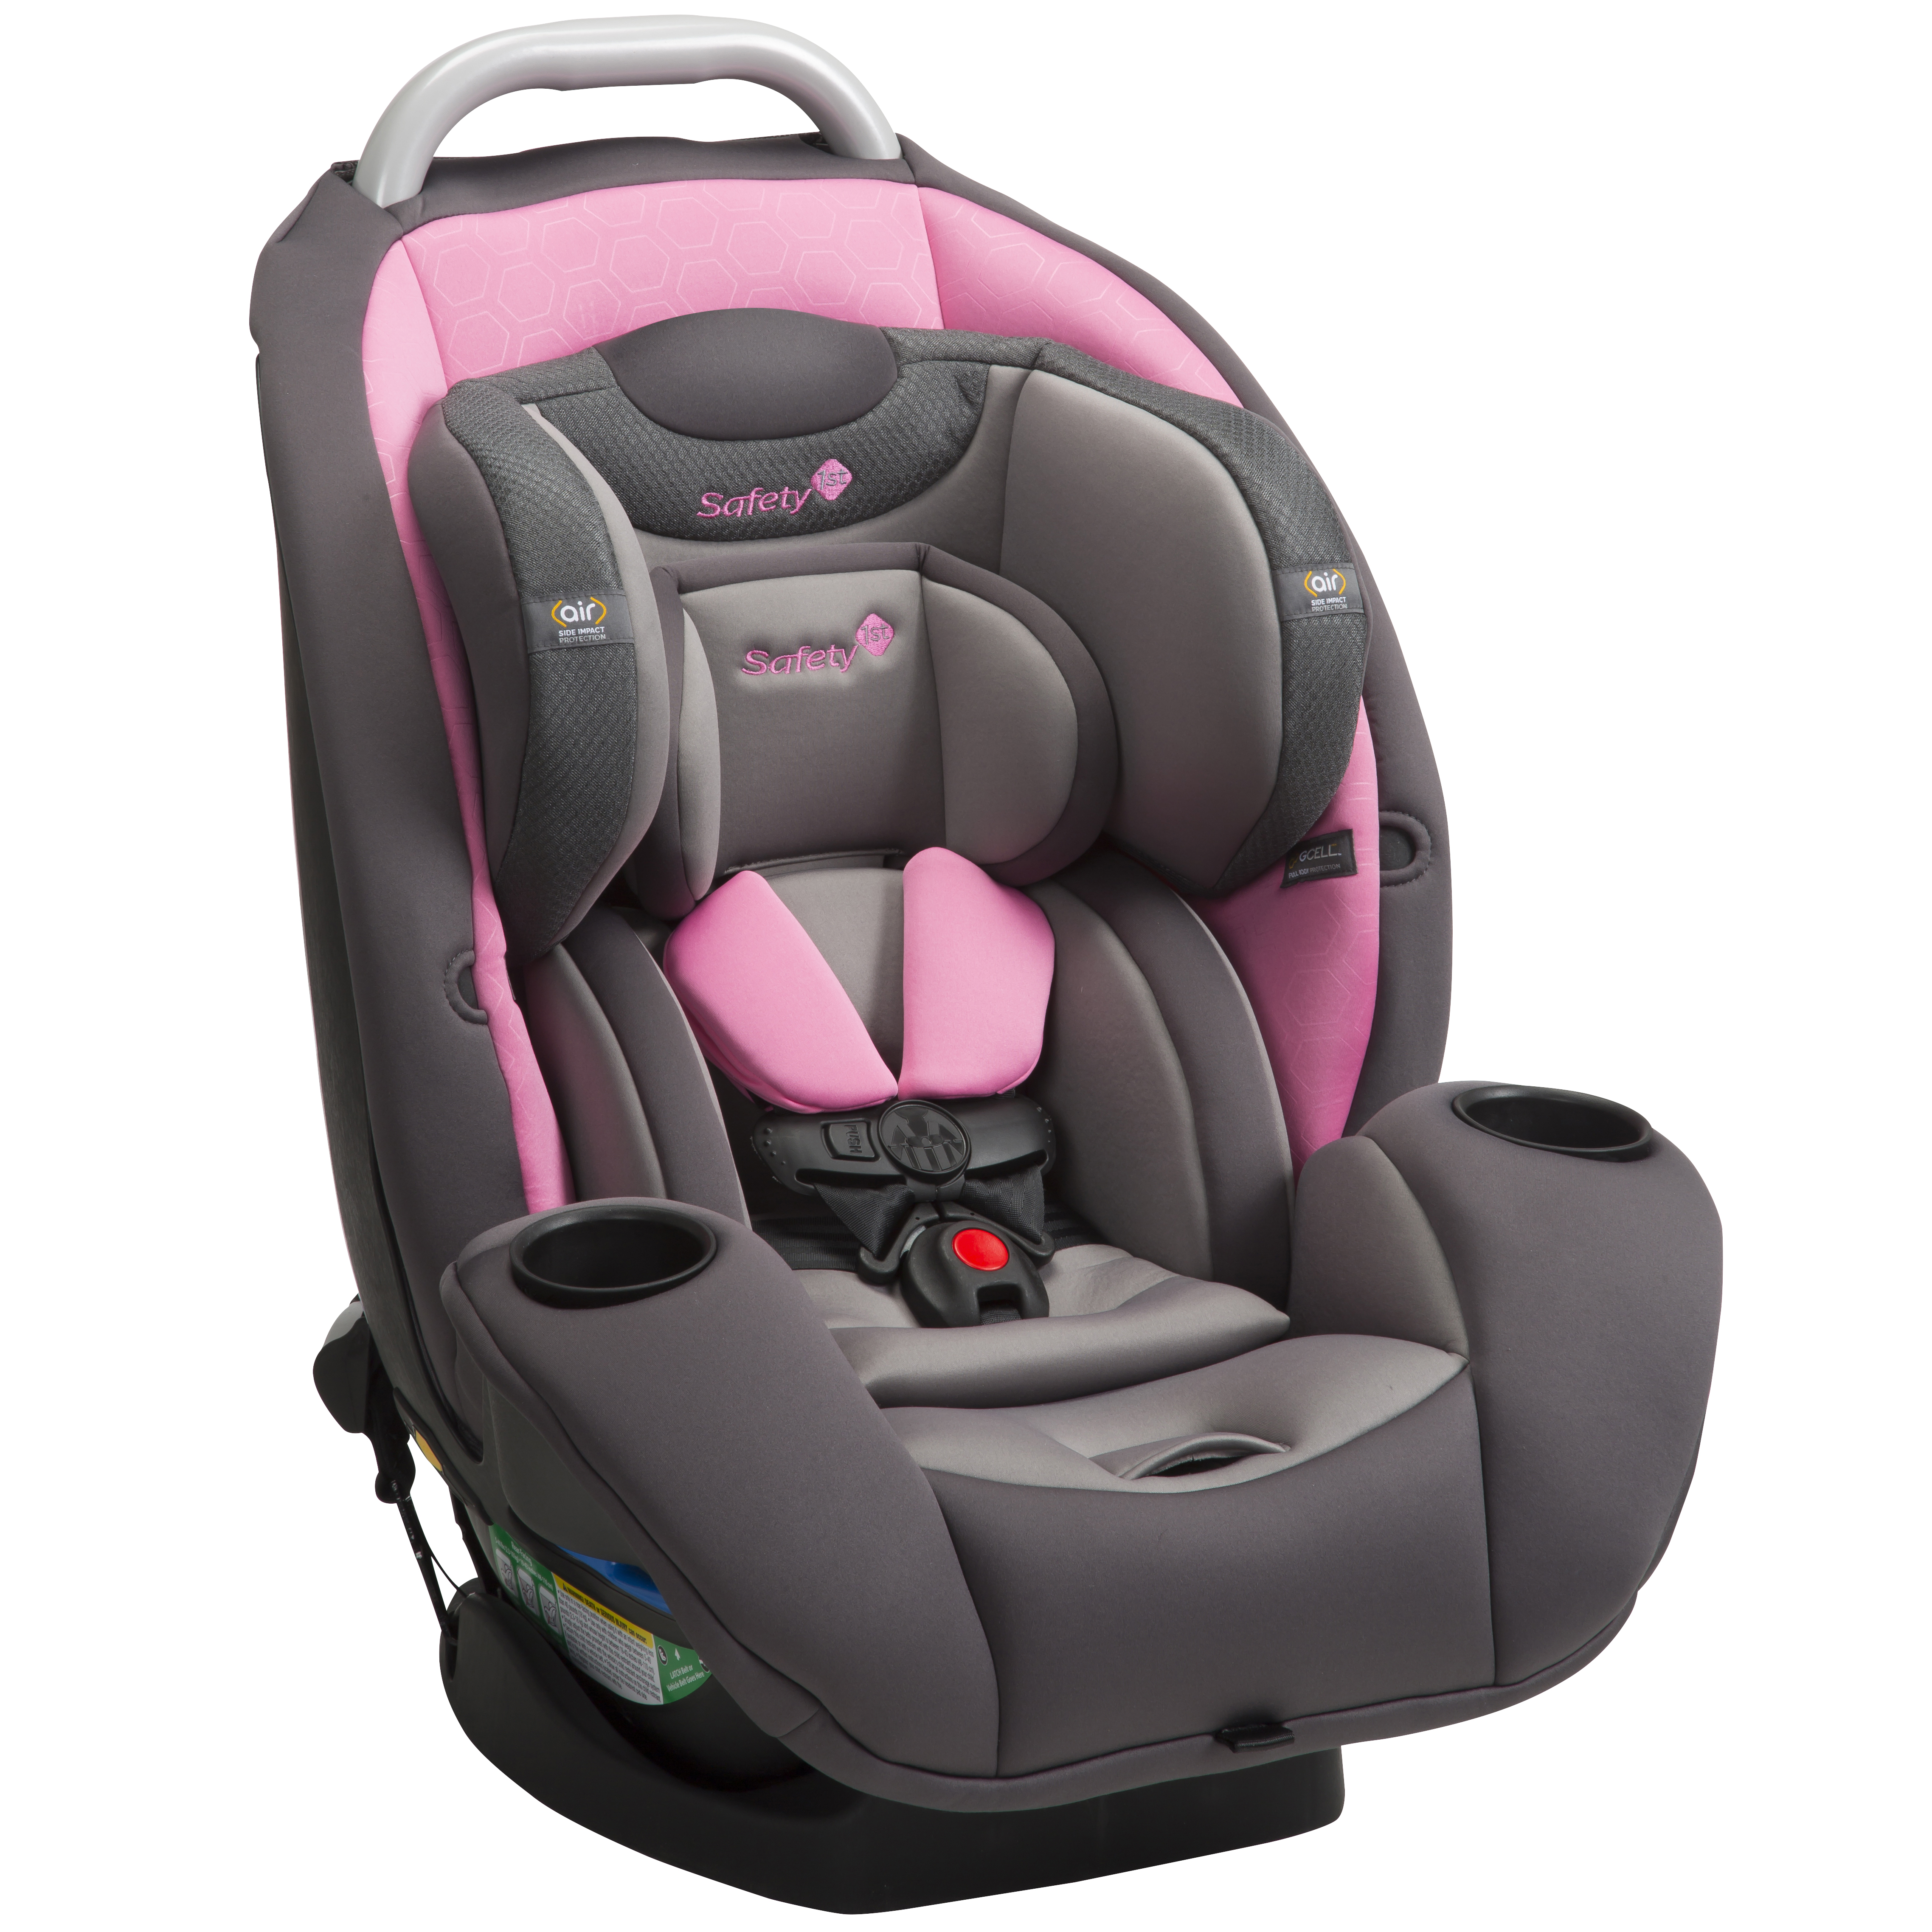 national car seat check saturday sept 24th safety 1st and allstate insurance partner with. Black Bedroom Furniture Sets. Home Design Ideas